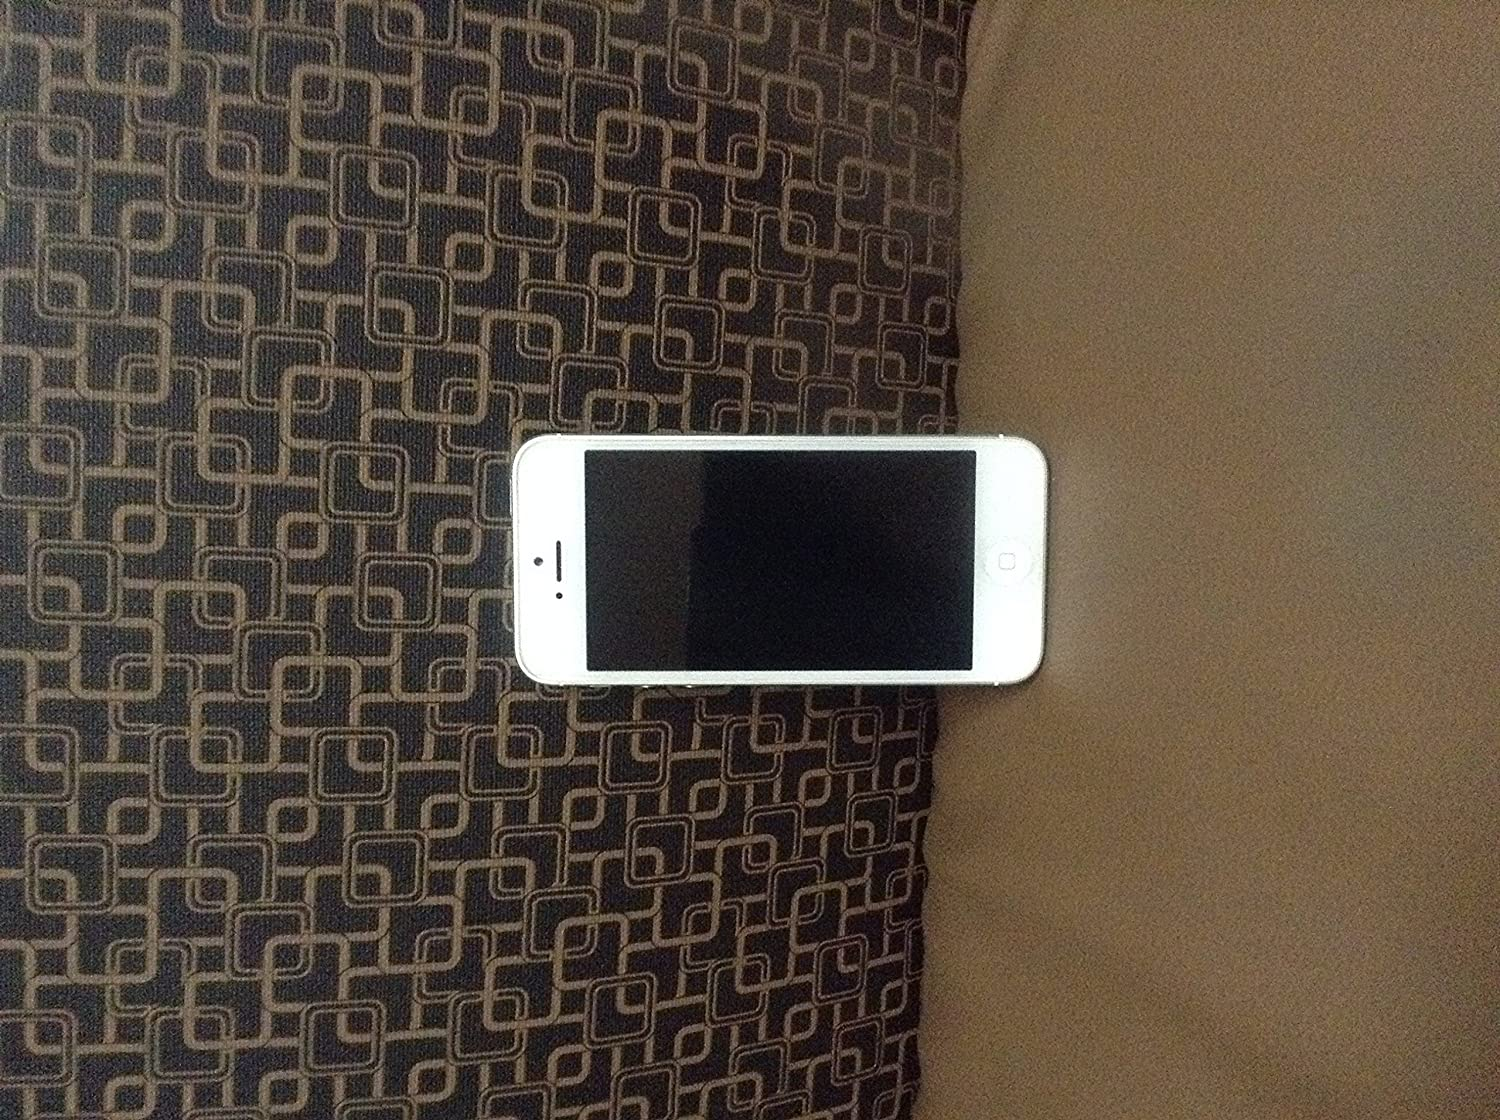 Title-White-Apple-iPhone-5-16GB-Locked-to-T-Mobile